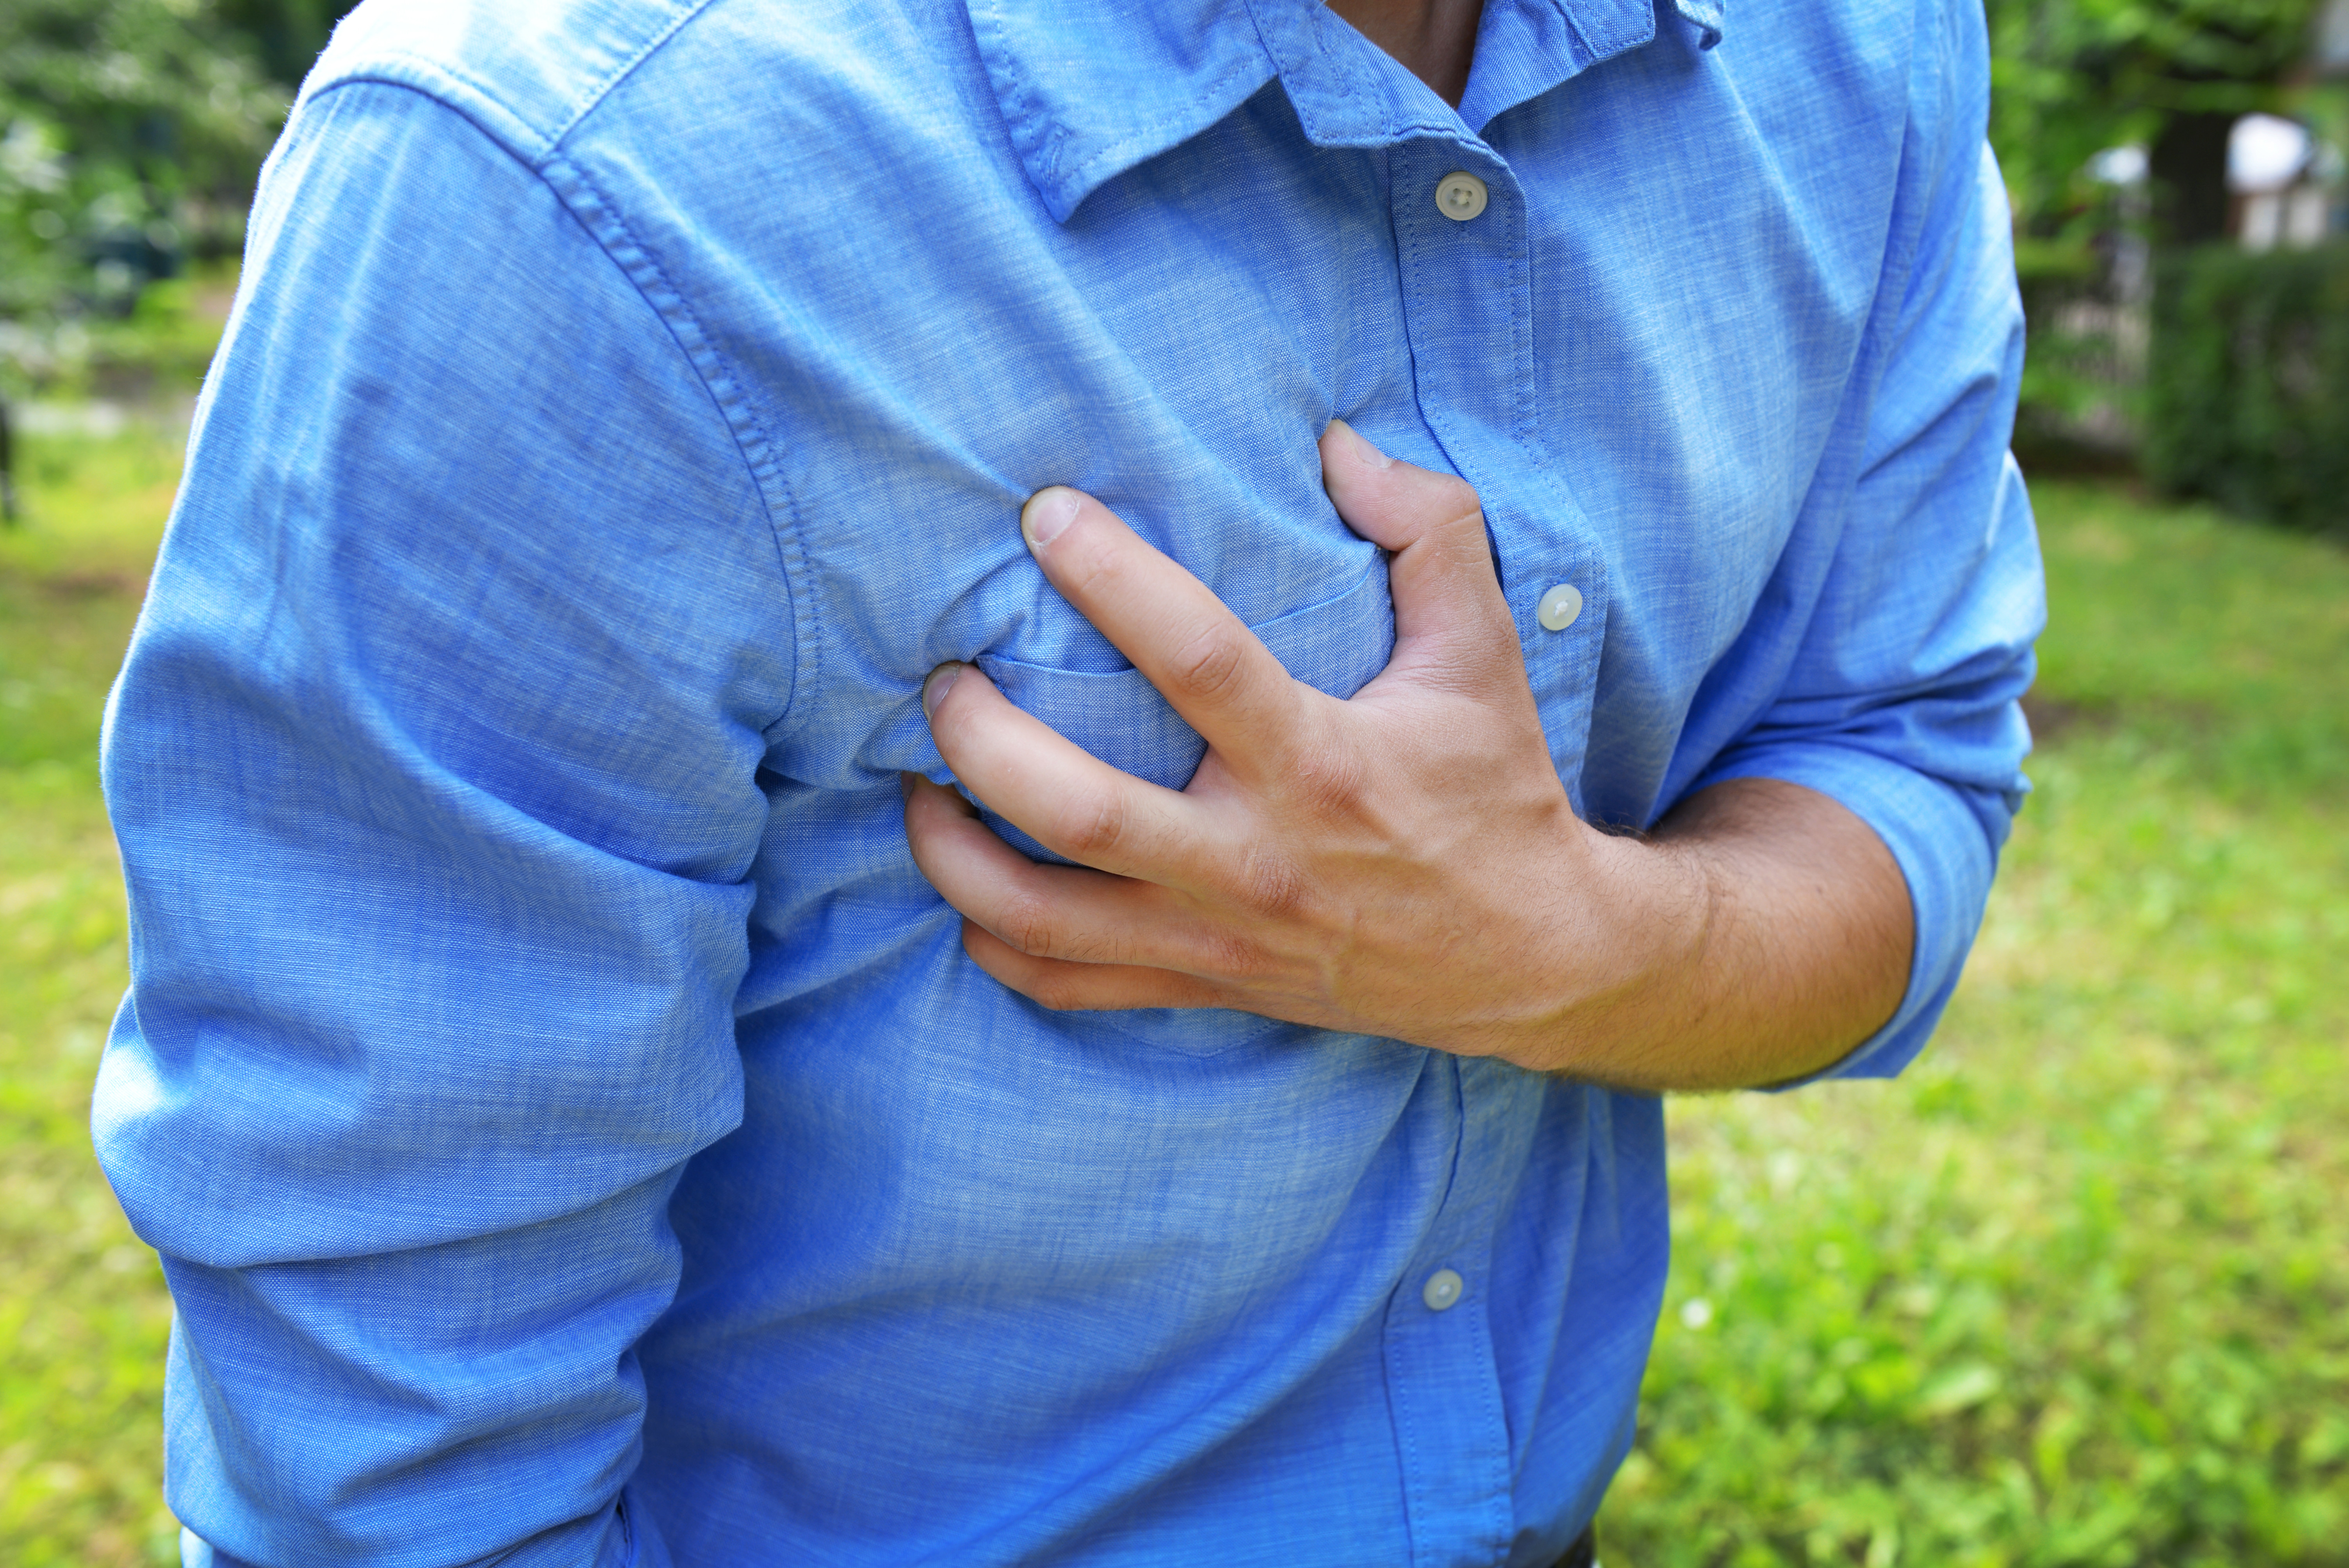 Cause of a Stabbing Severe Chest Pain but All Tests Are Normal